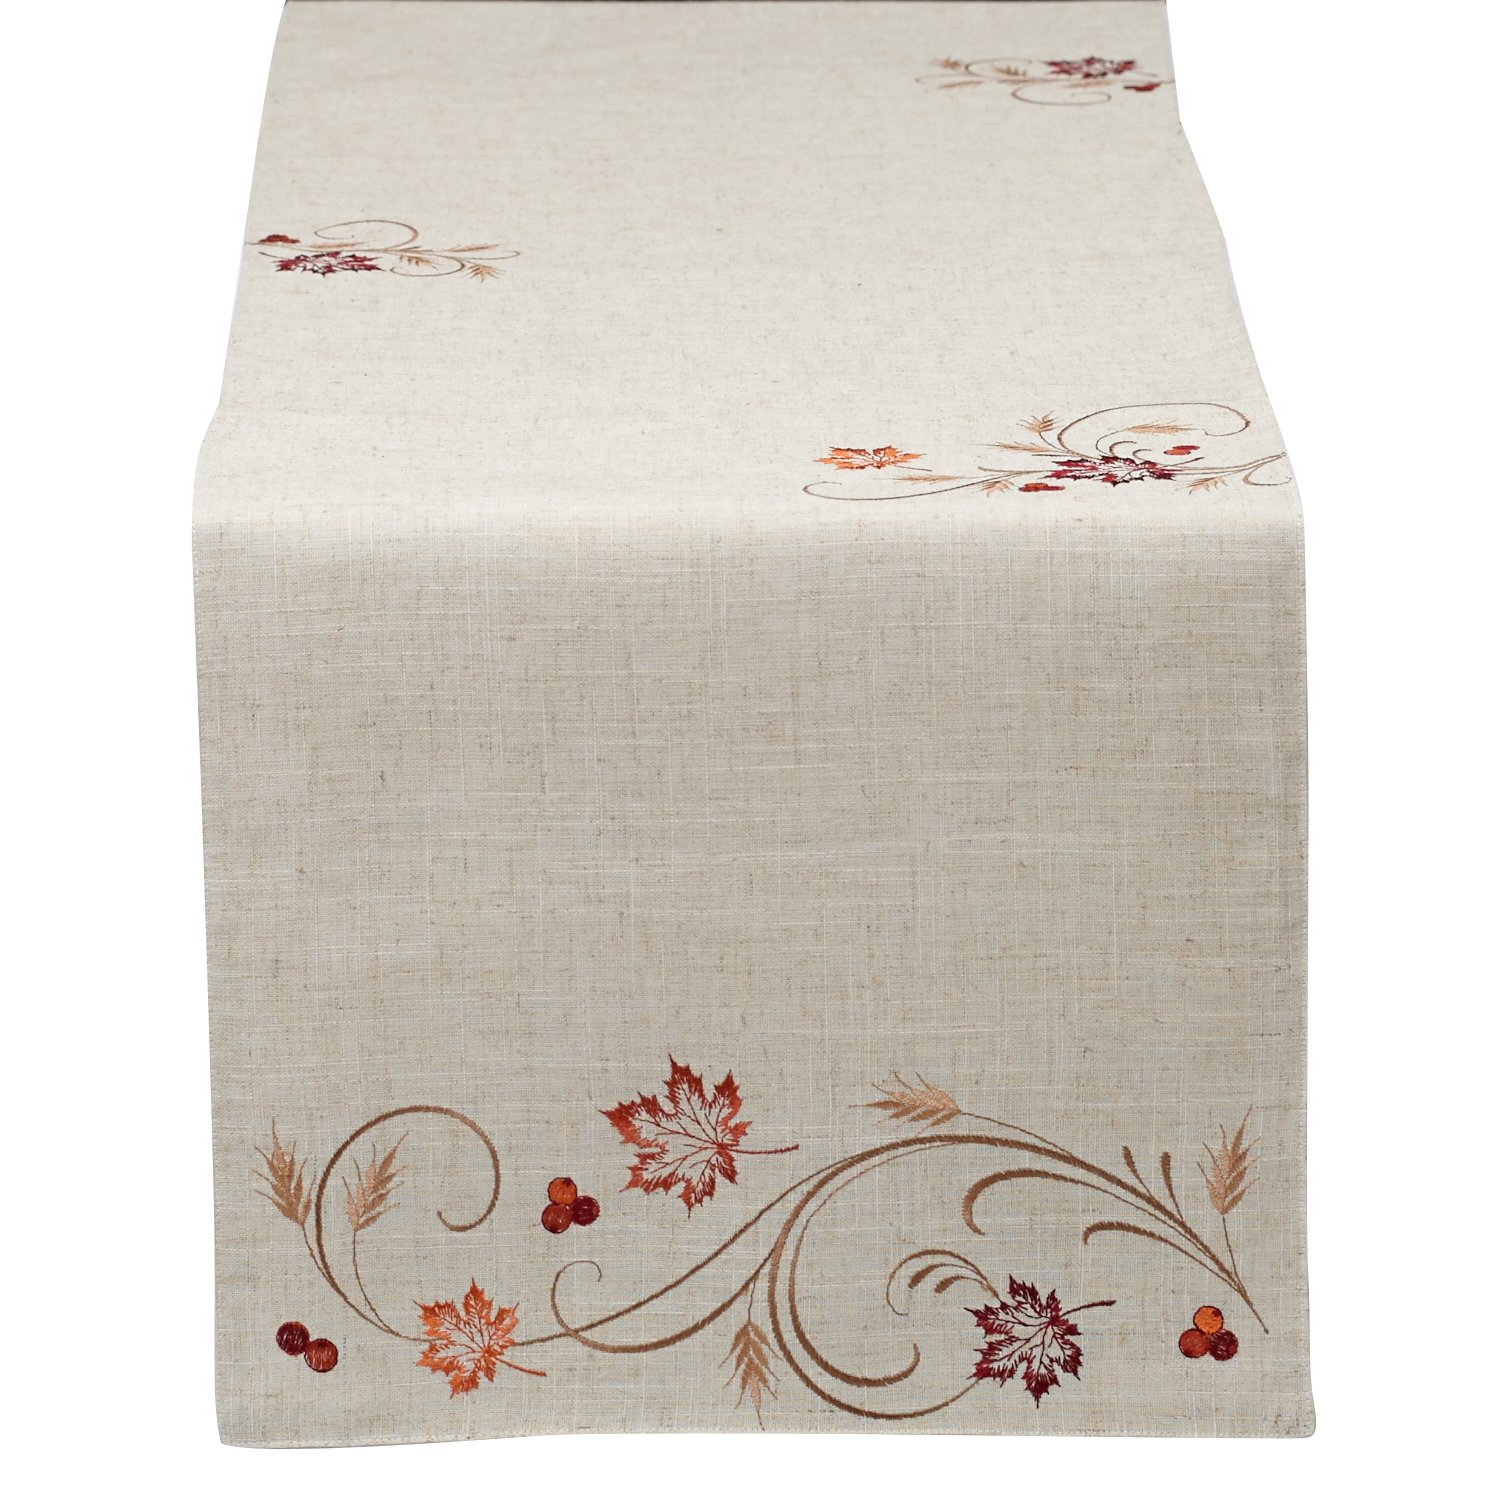 DII 14x70'' Polyester Table Runner, Embroidered Autumn Wheat - Perfect for Fall, Thanksgiving, Catering Events, or Everyday Use